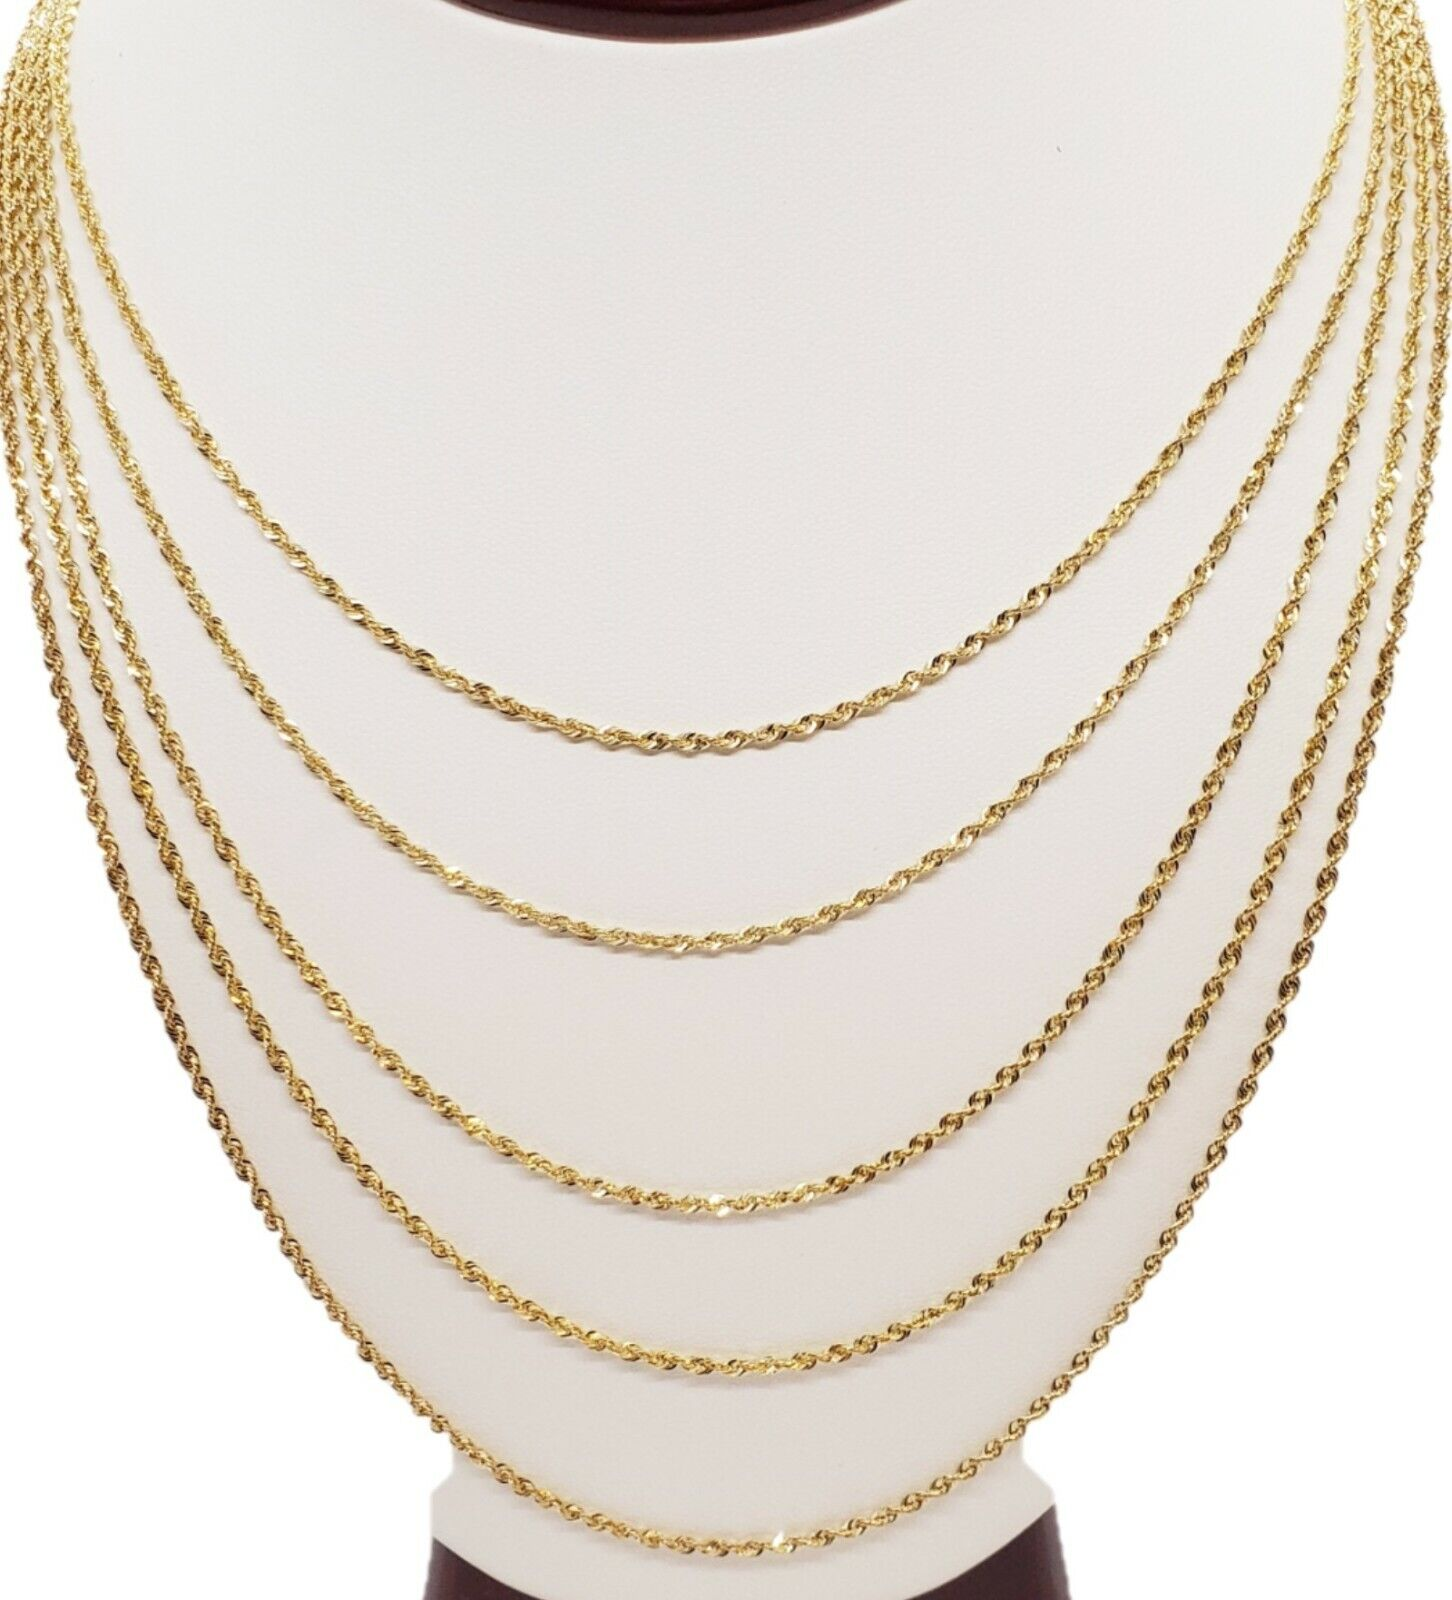 10K Solid Yellow Gold Necklace Gold Rope Chain 16″ 18″ 20″ 22″ 24″ 26″ 28″ 30″ Fine Jewelry